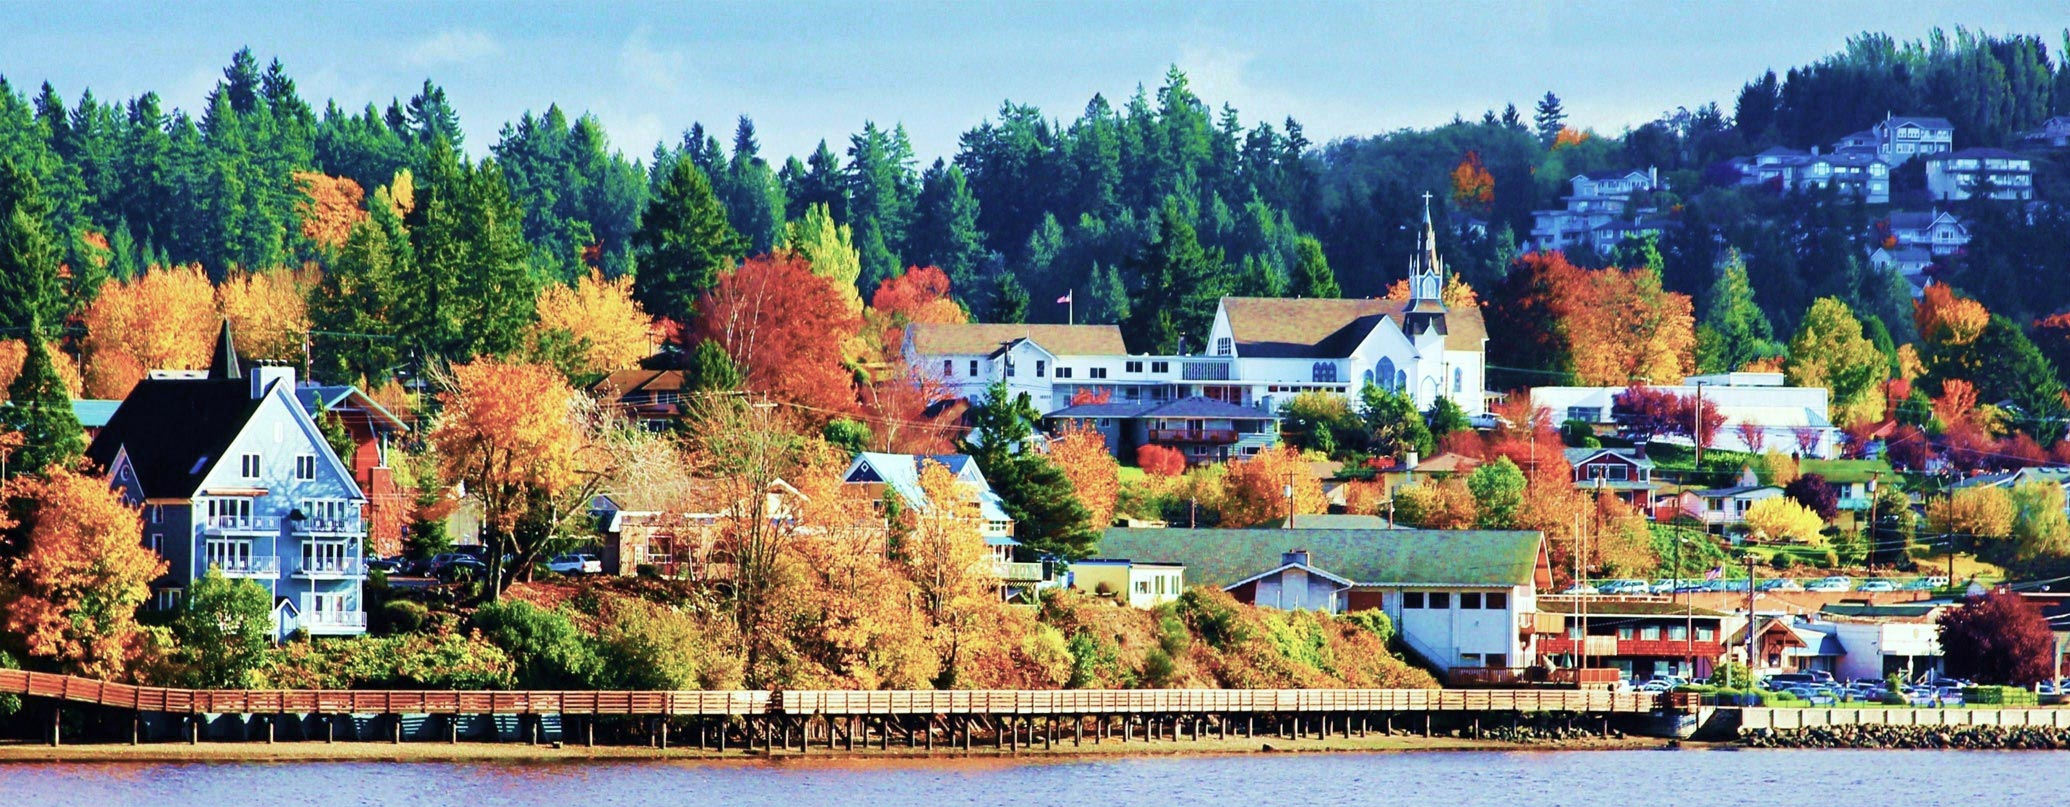 Estate Planning, Probate & Elder Law Attorney - Poulsbo & all of Kitsap